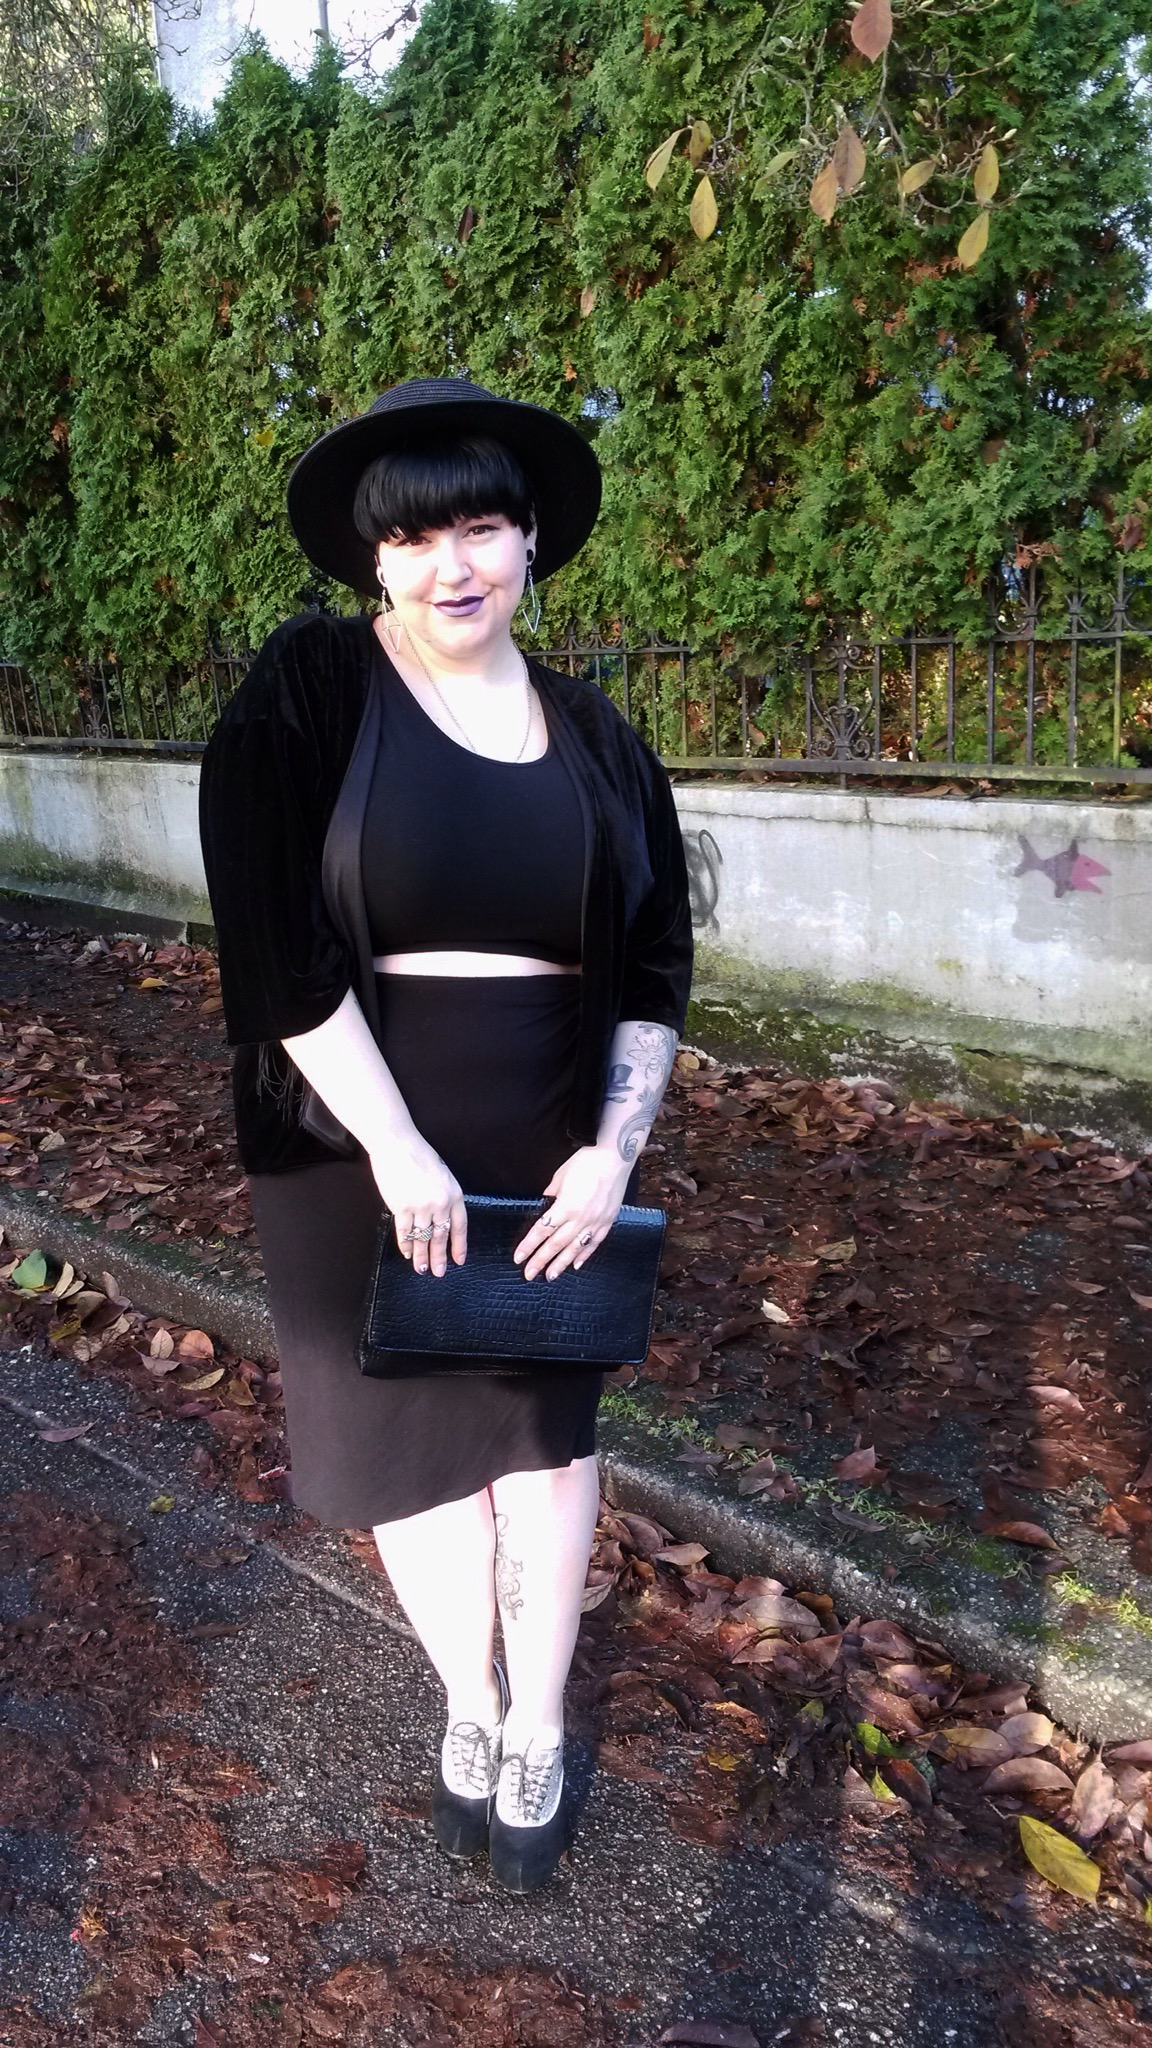 plus size fashion blogger Margot Meanie, is wearing forever21+ & Addition Elle full details and links are on her blog margotmeanie.com